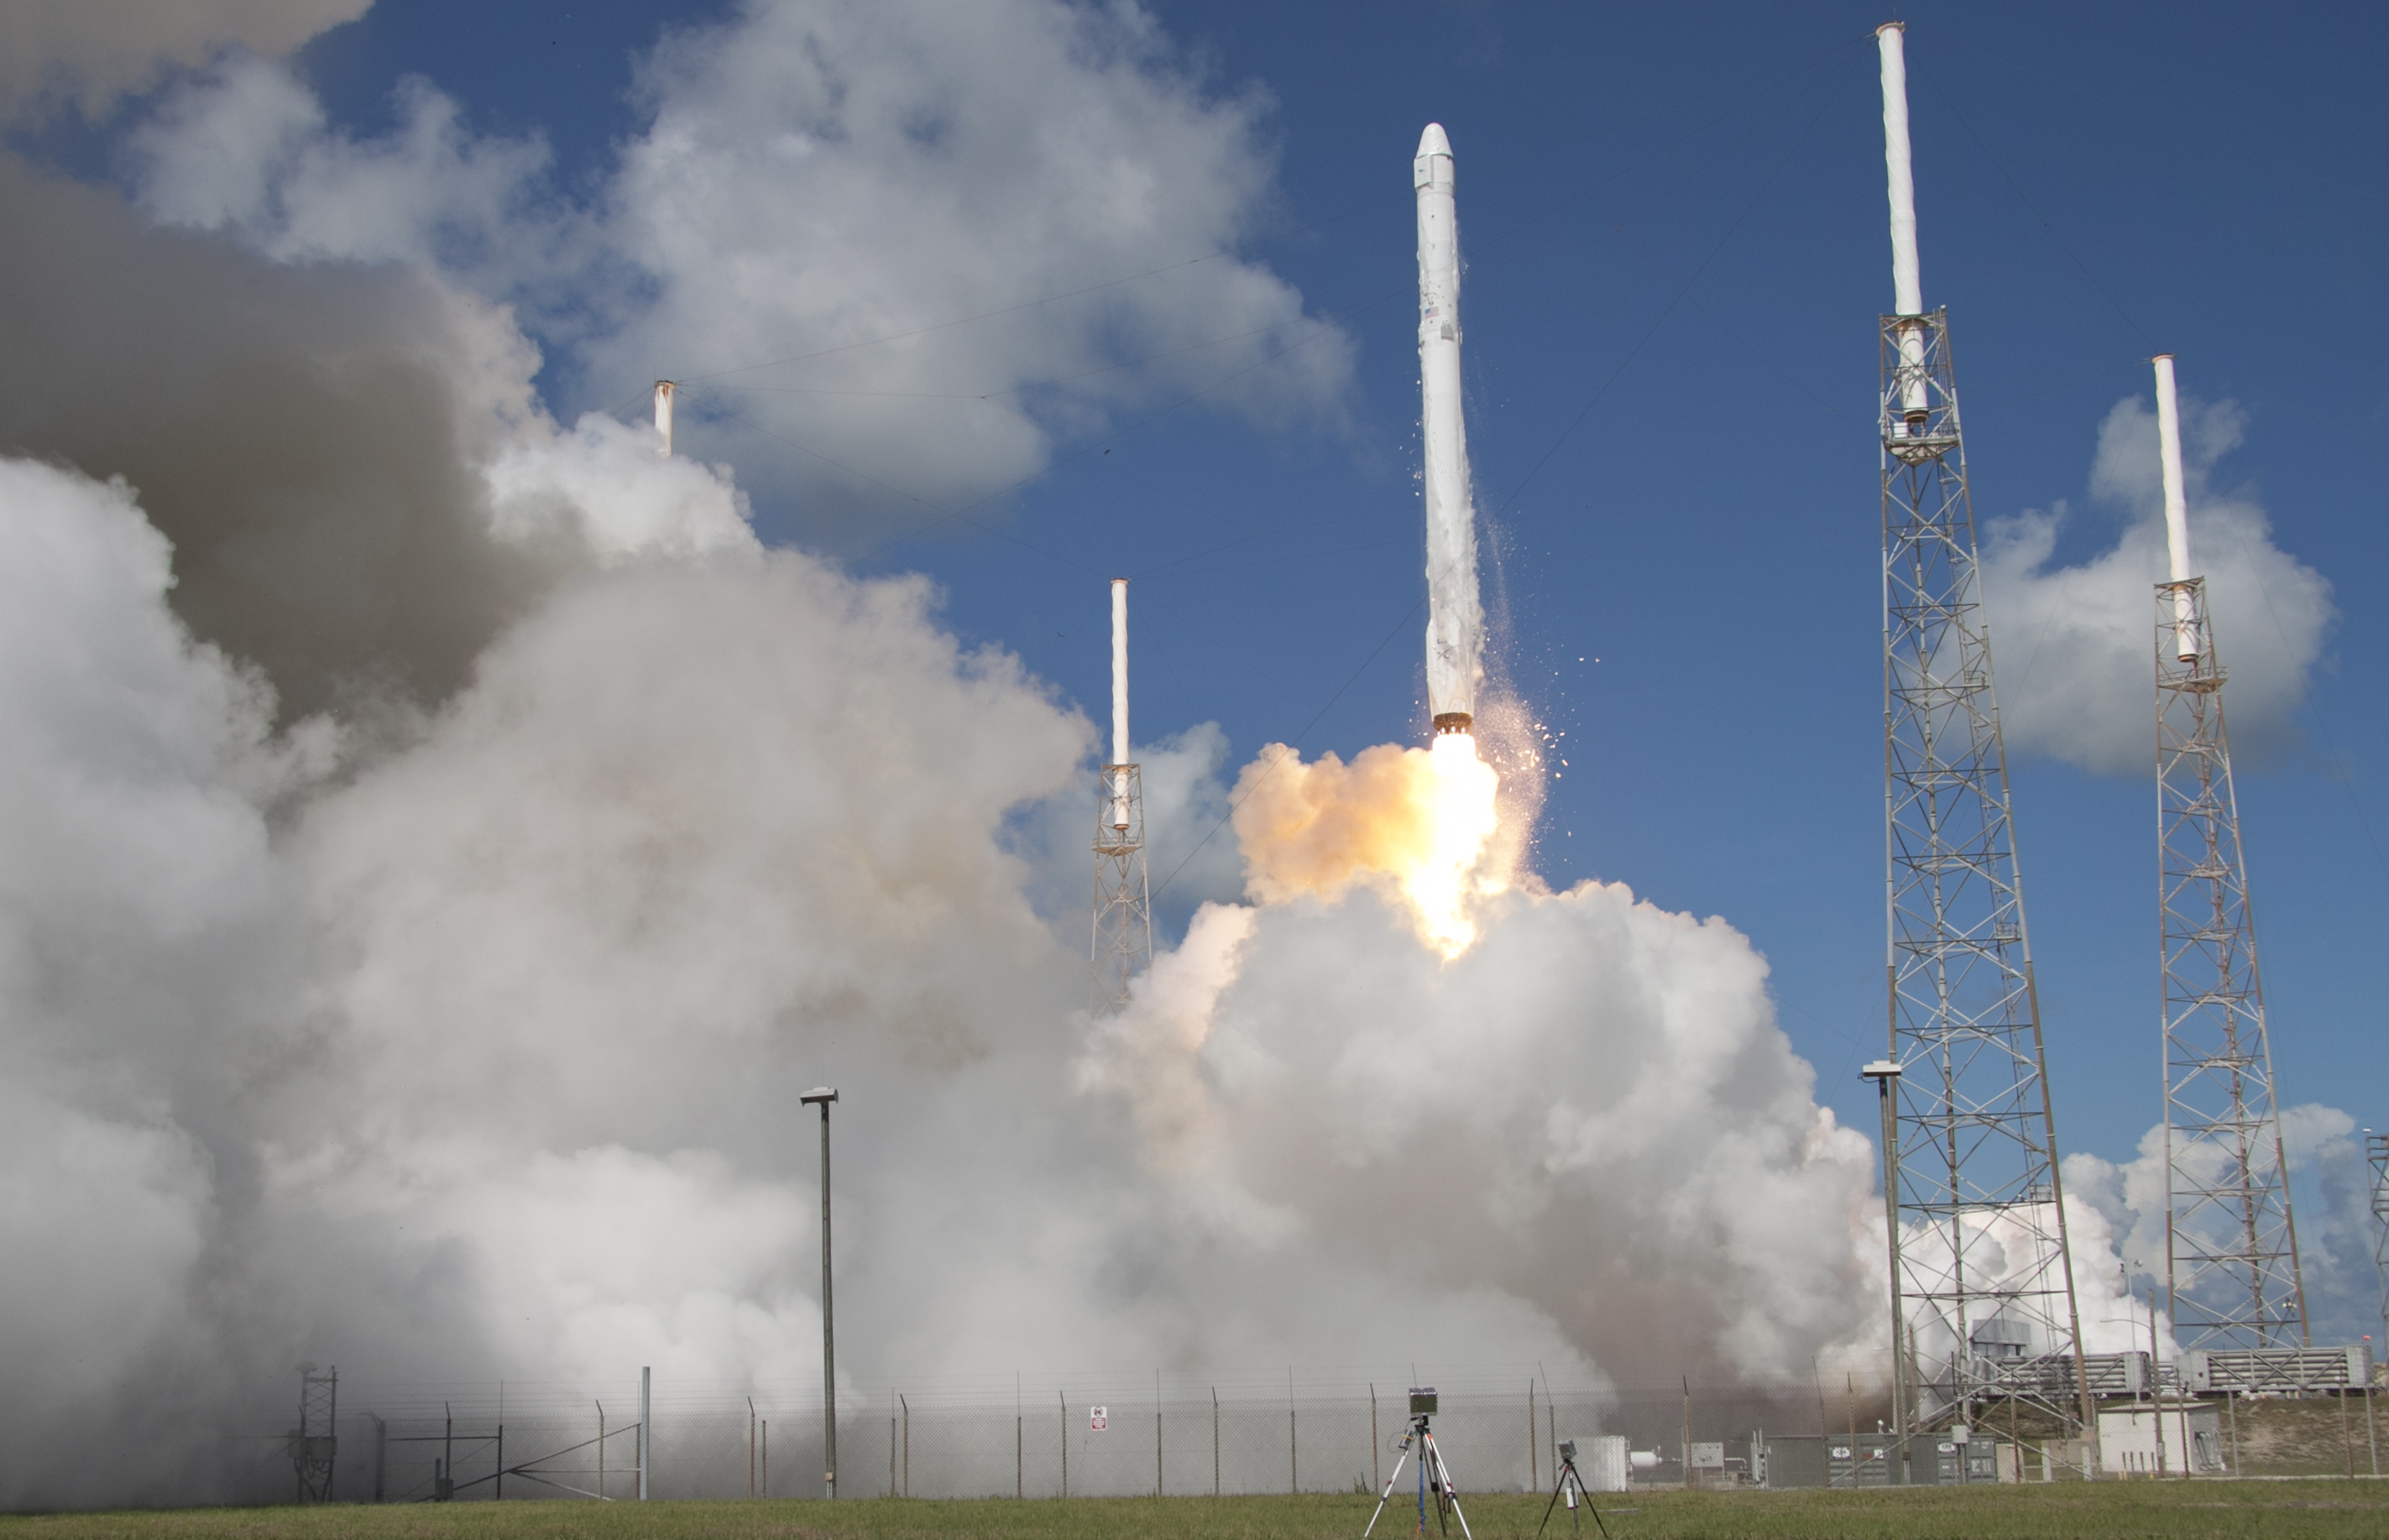 spacex payscale - photo #25